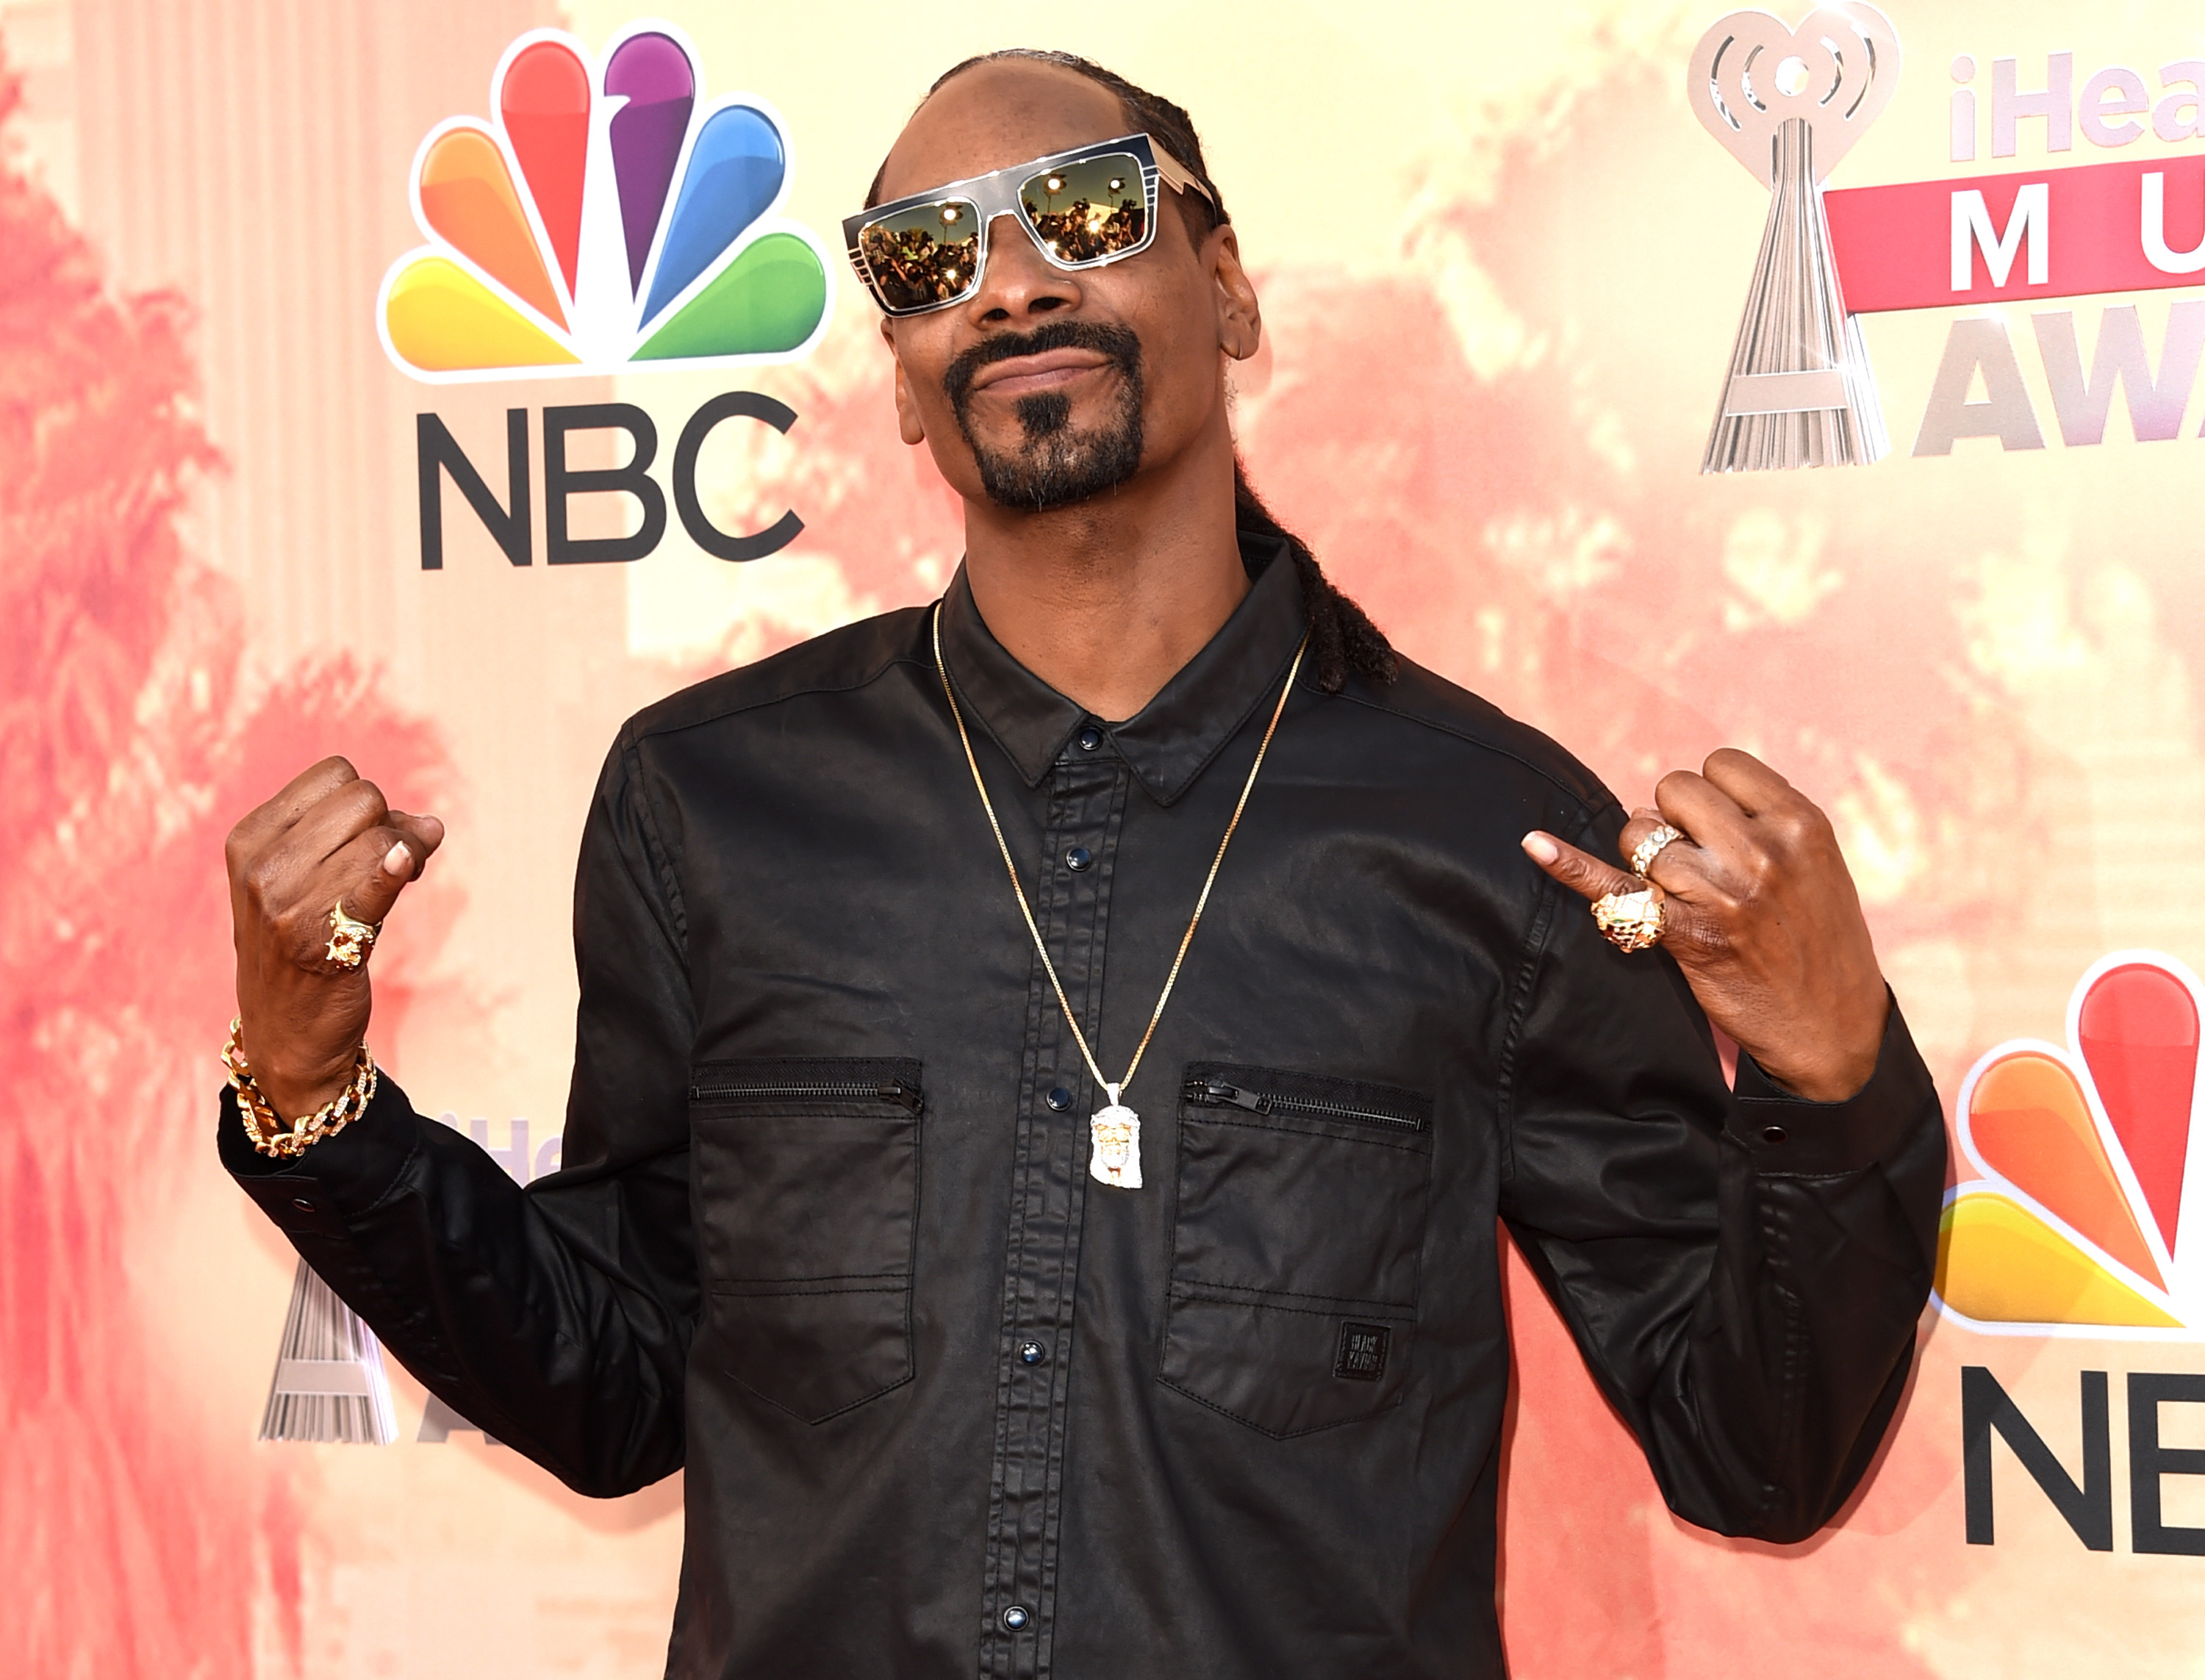 Rapper Snoop Dogg attends the 2015 iHeartRadio Music Awards which broadcasted live on NBC from The Shrine Auditorium on March 29, 2015 in Los Angeles, California.  (Photo by Jason Merritt/Getty Images for iHeartMedia)